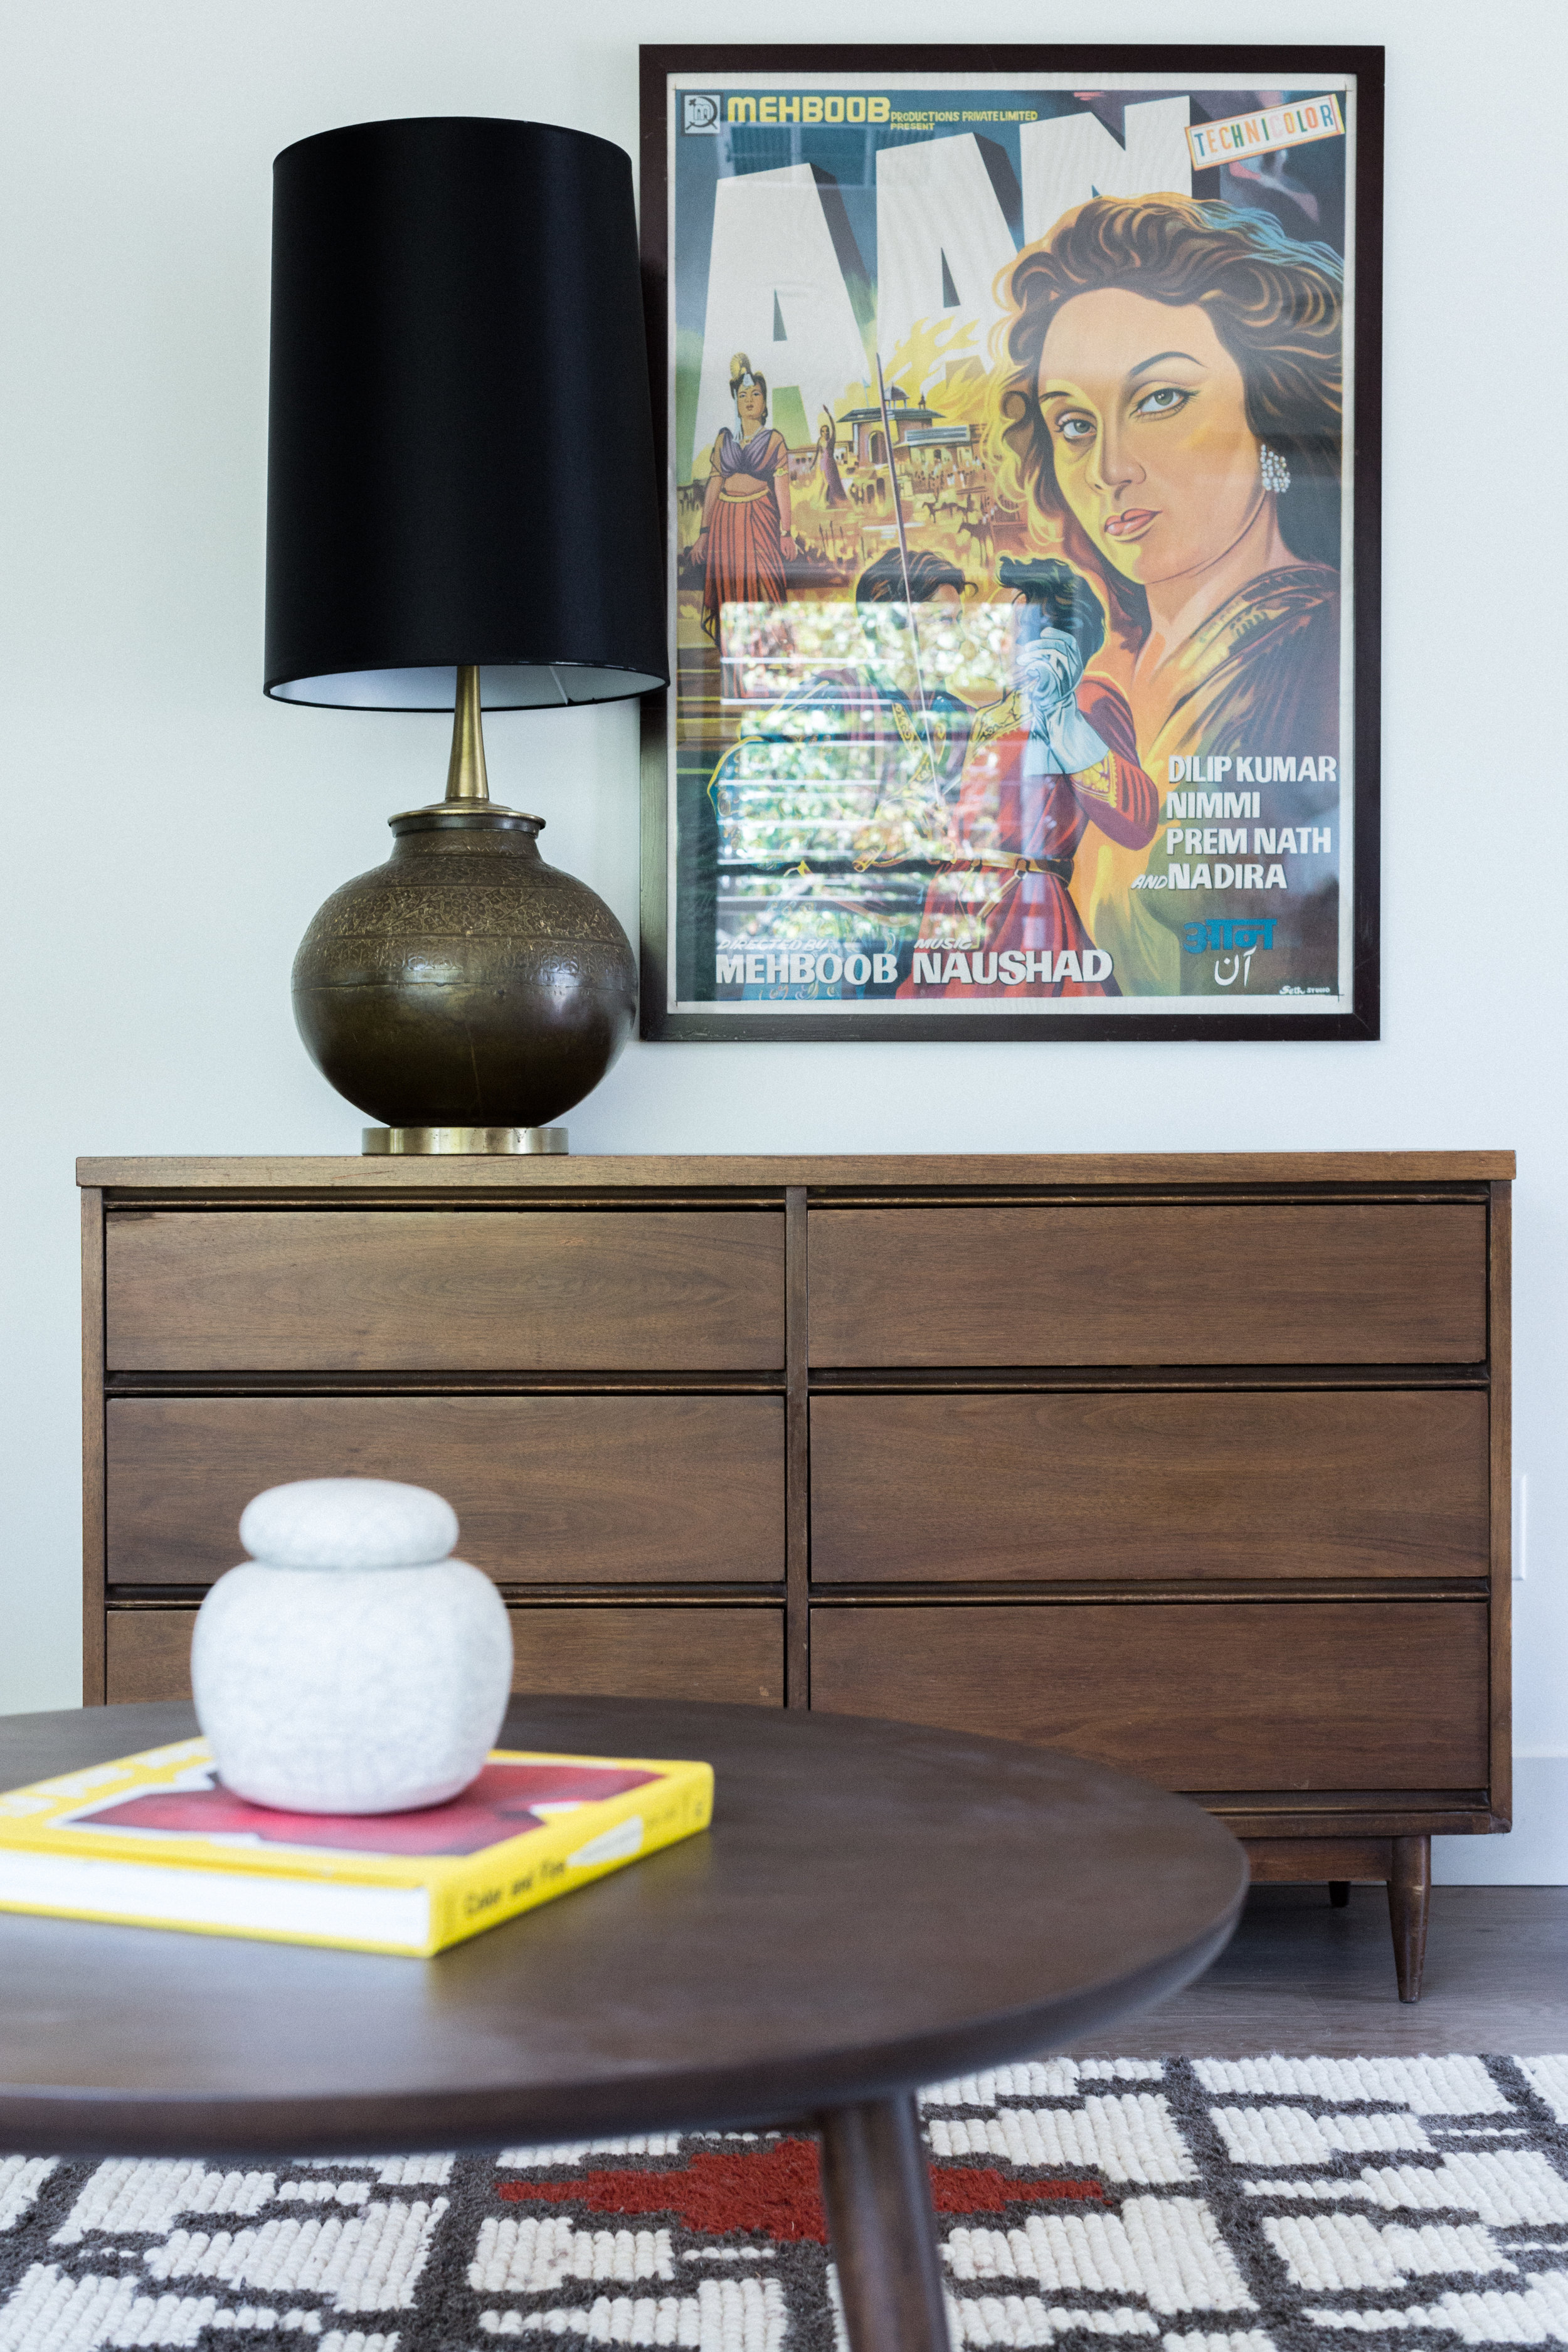 When you just happen to have an awesome vintage Bollywood poster, you just have to use it. Especially when it picks up on your colors. Below it, a vintage dresser (from craigslist, people!) we're using as a credenza, with a vintage brass lamp (thrifted!) and oversized black shade for drama.